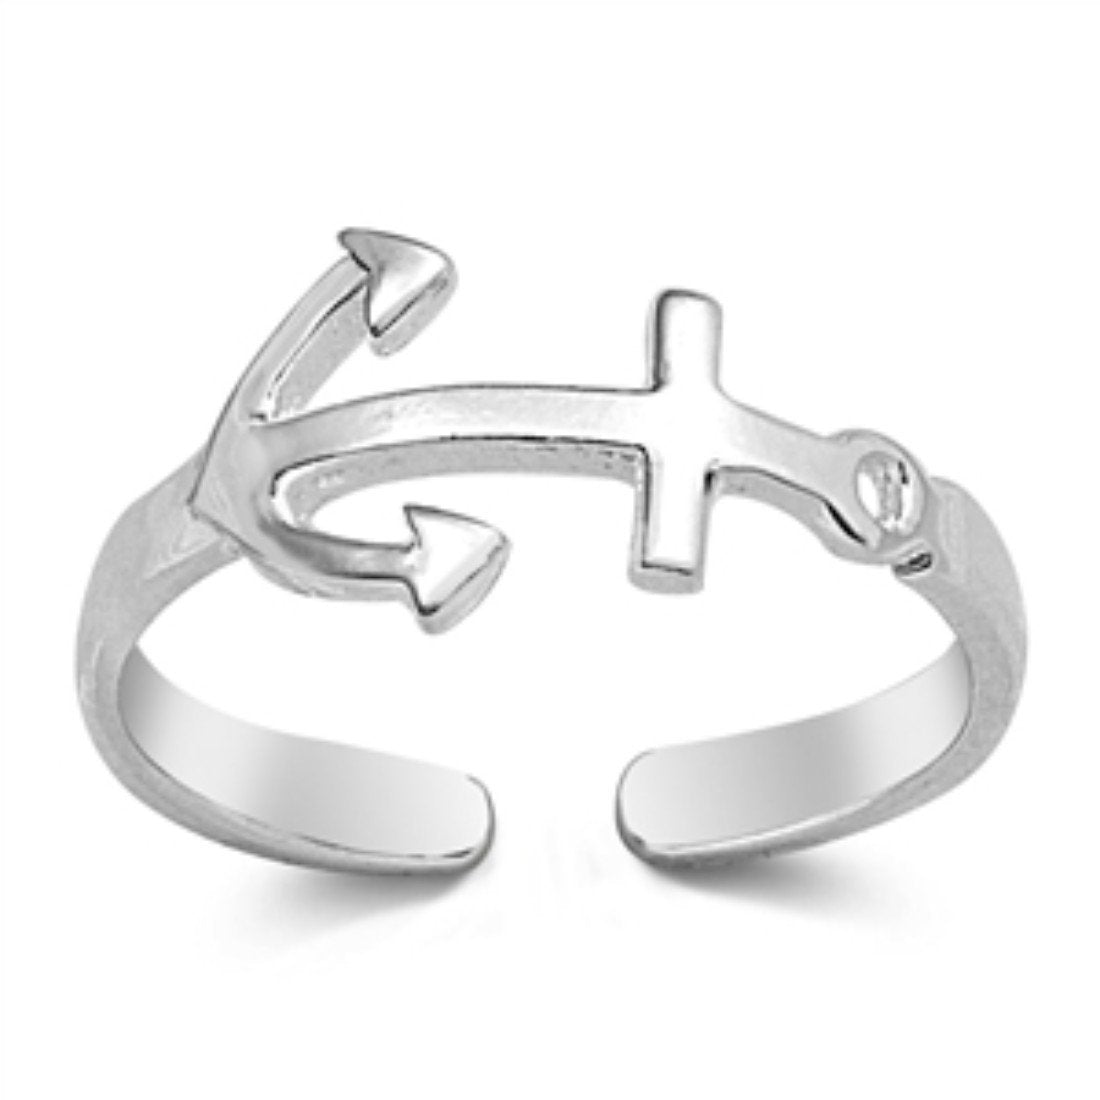 Sideways Anchor Adjustable Toe Rings Band Foot Jewelry 925 Sterling Silver (7mm)